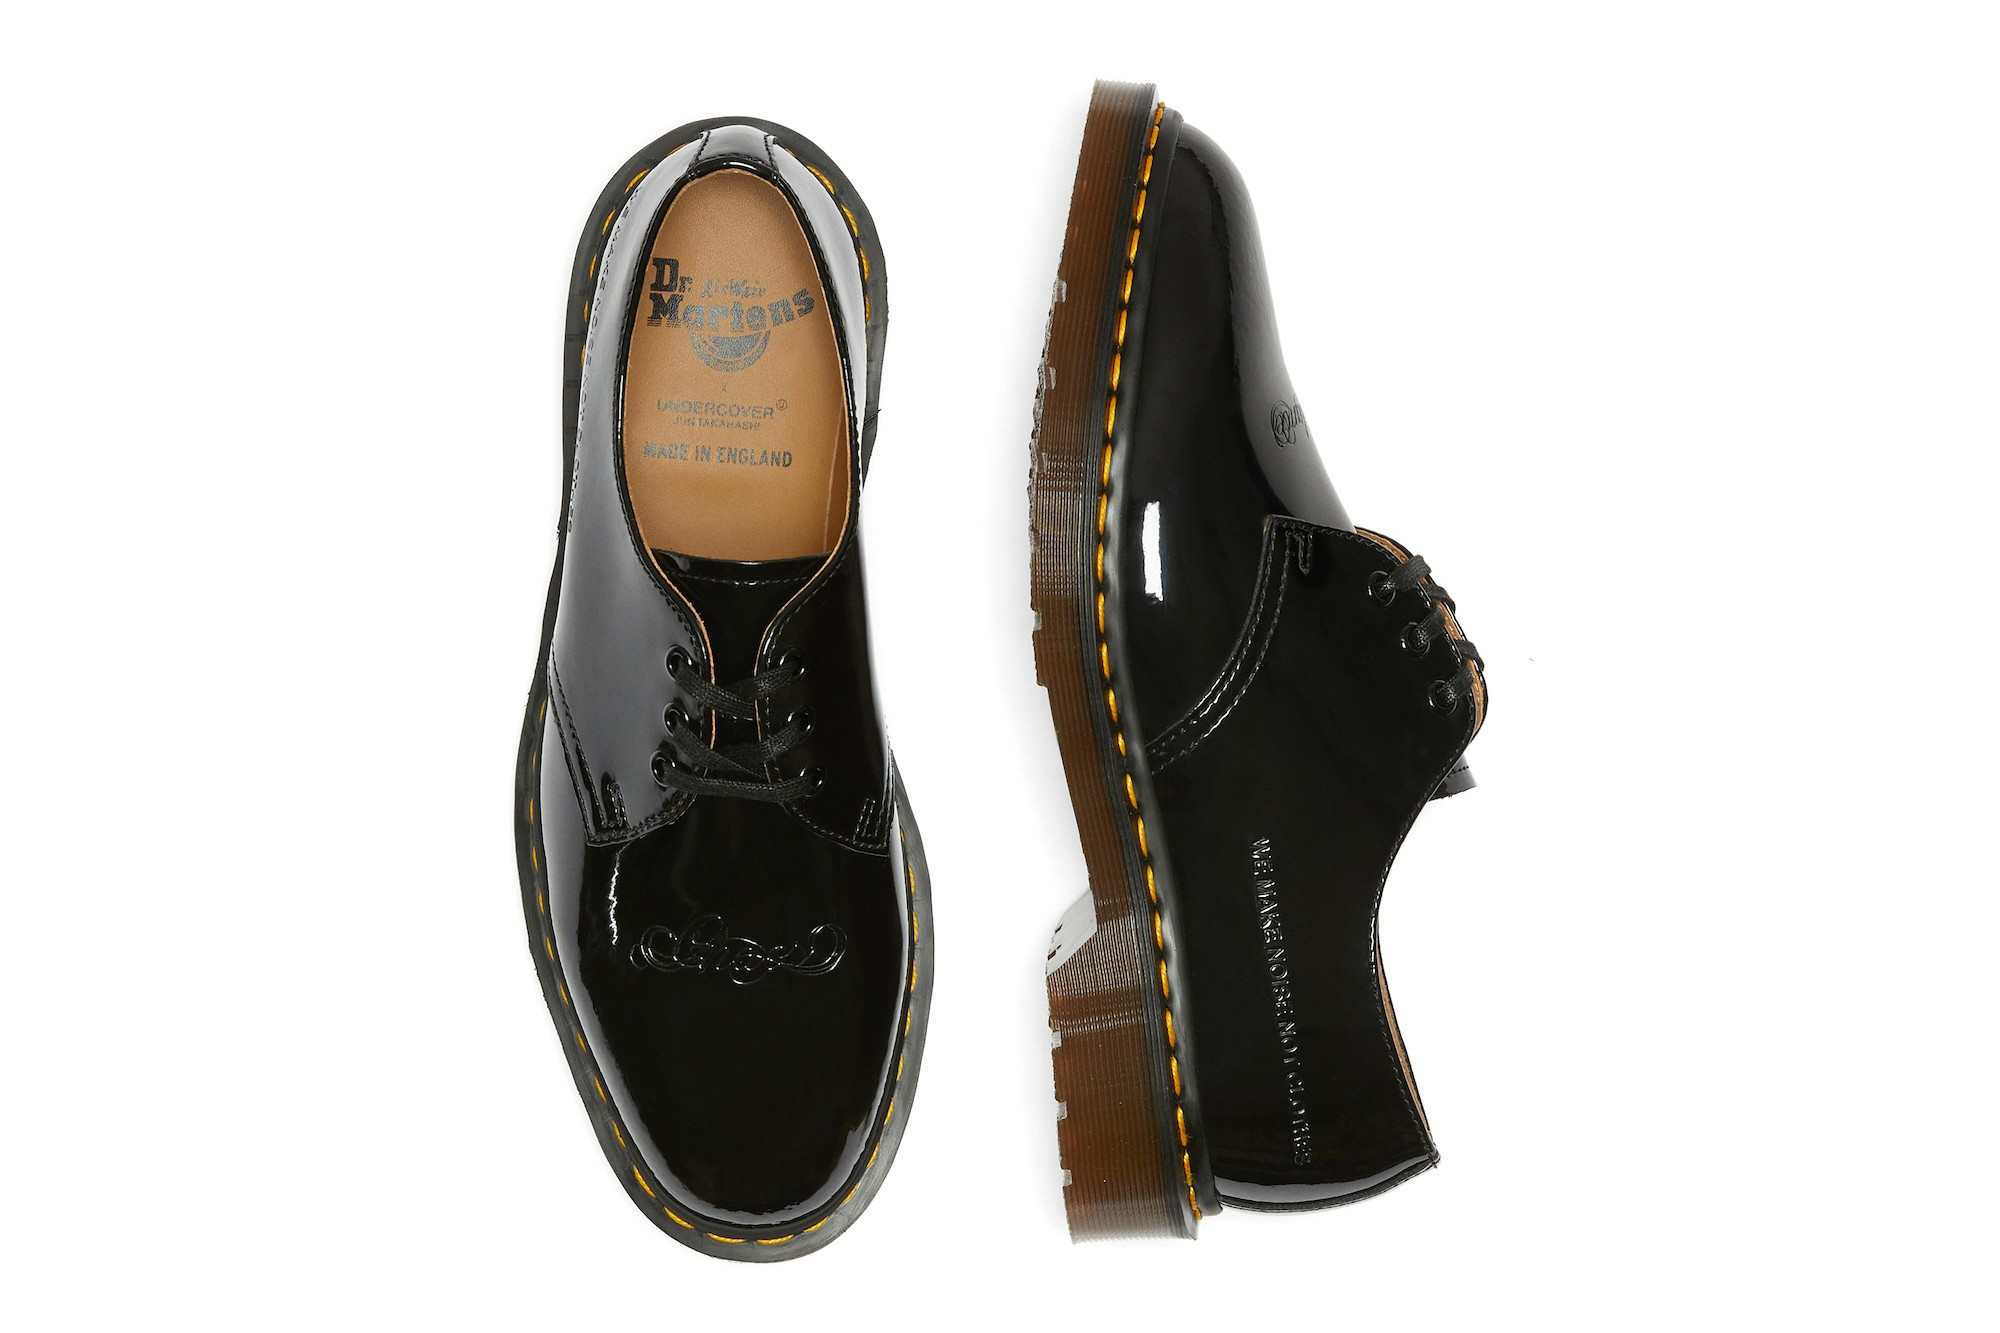 UNDERCOVER x Dr. Martens Patent Leather